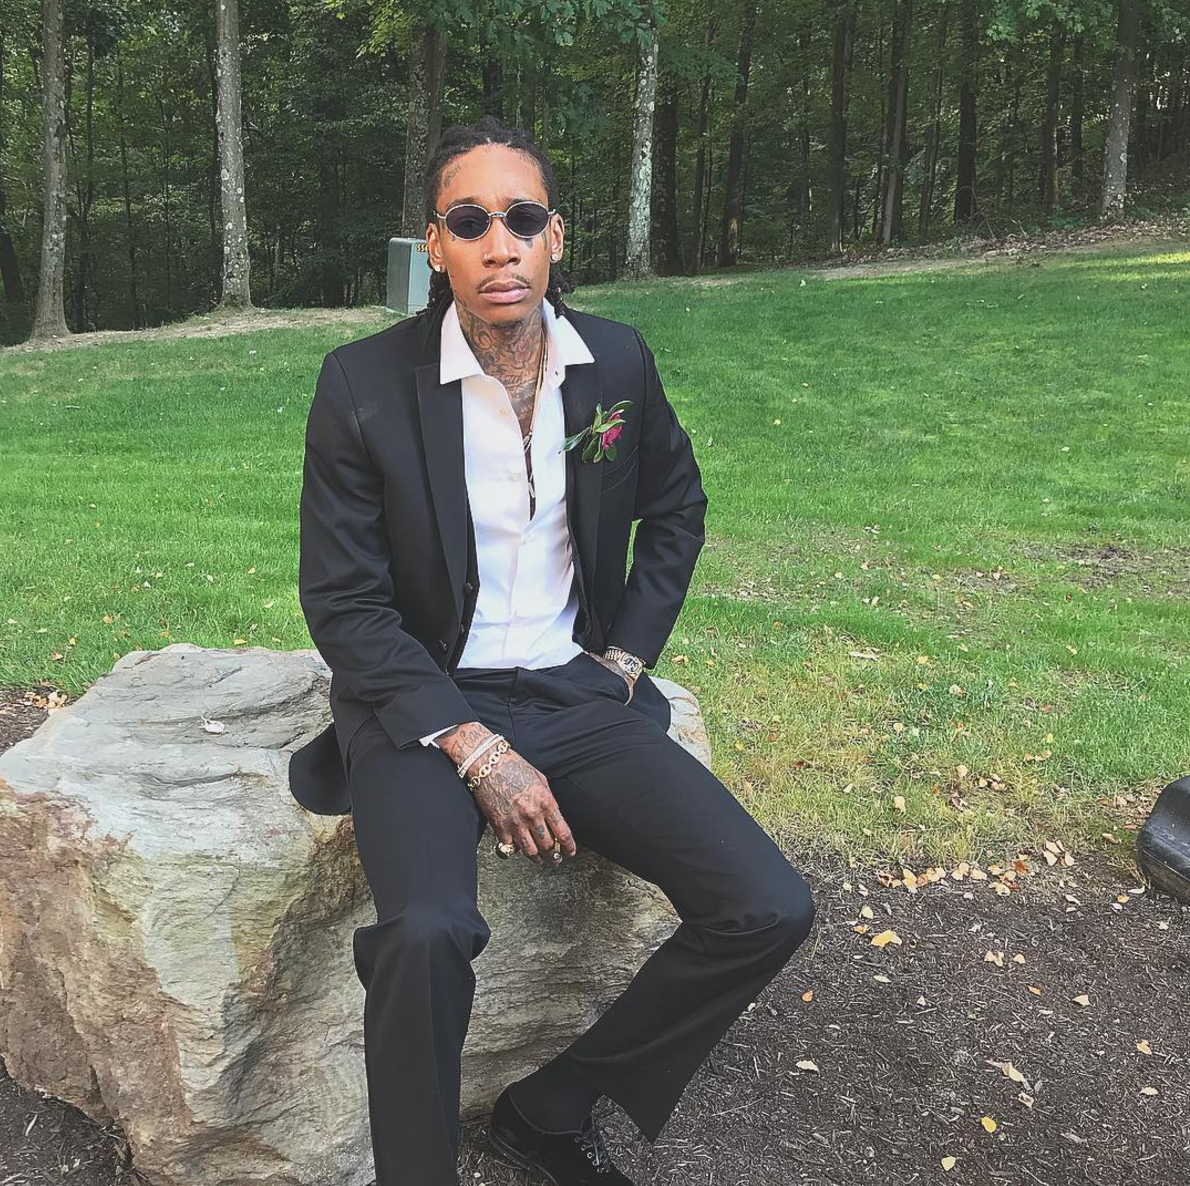 SPOTTED: Wiz Khalifa In A Black Suit